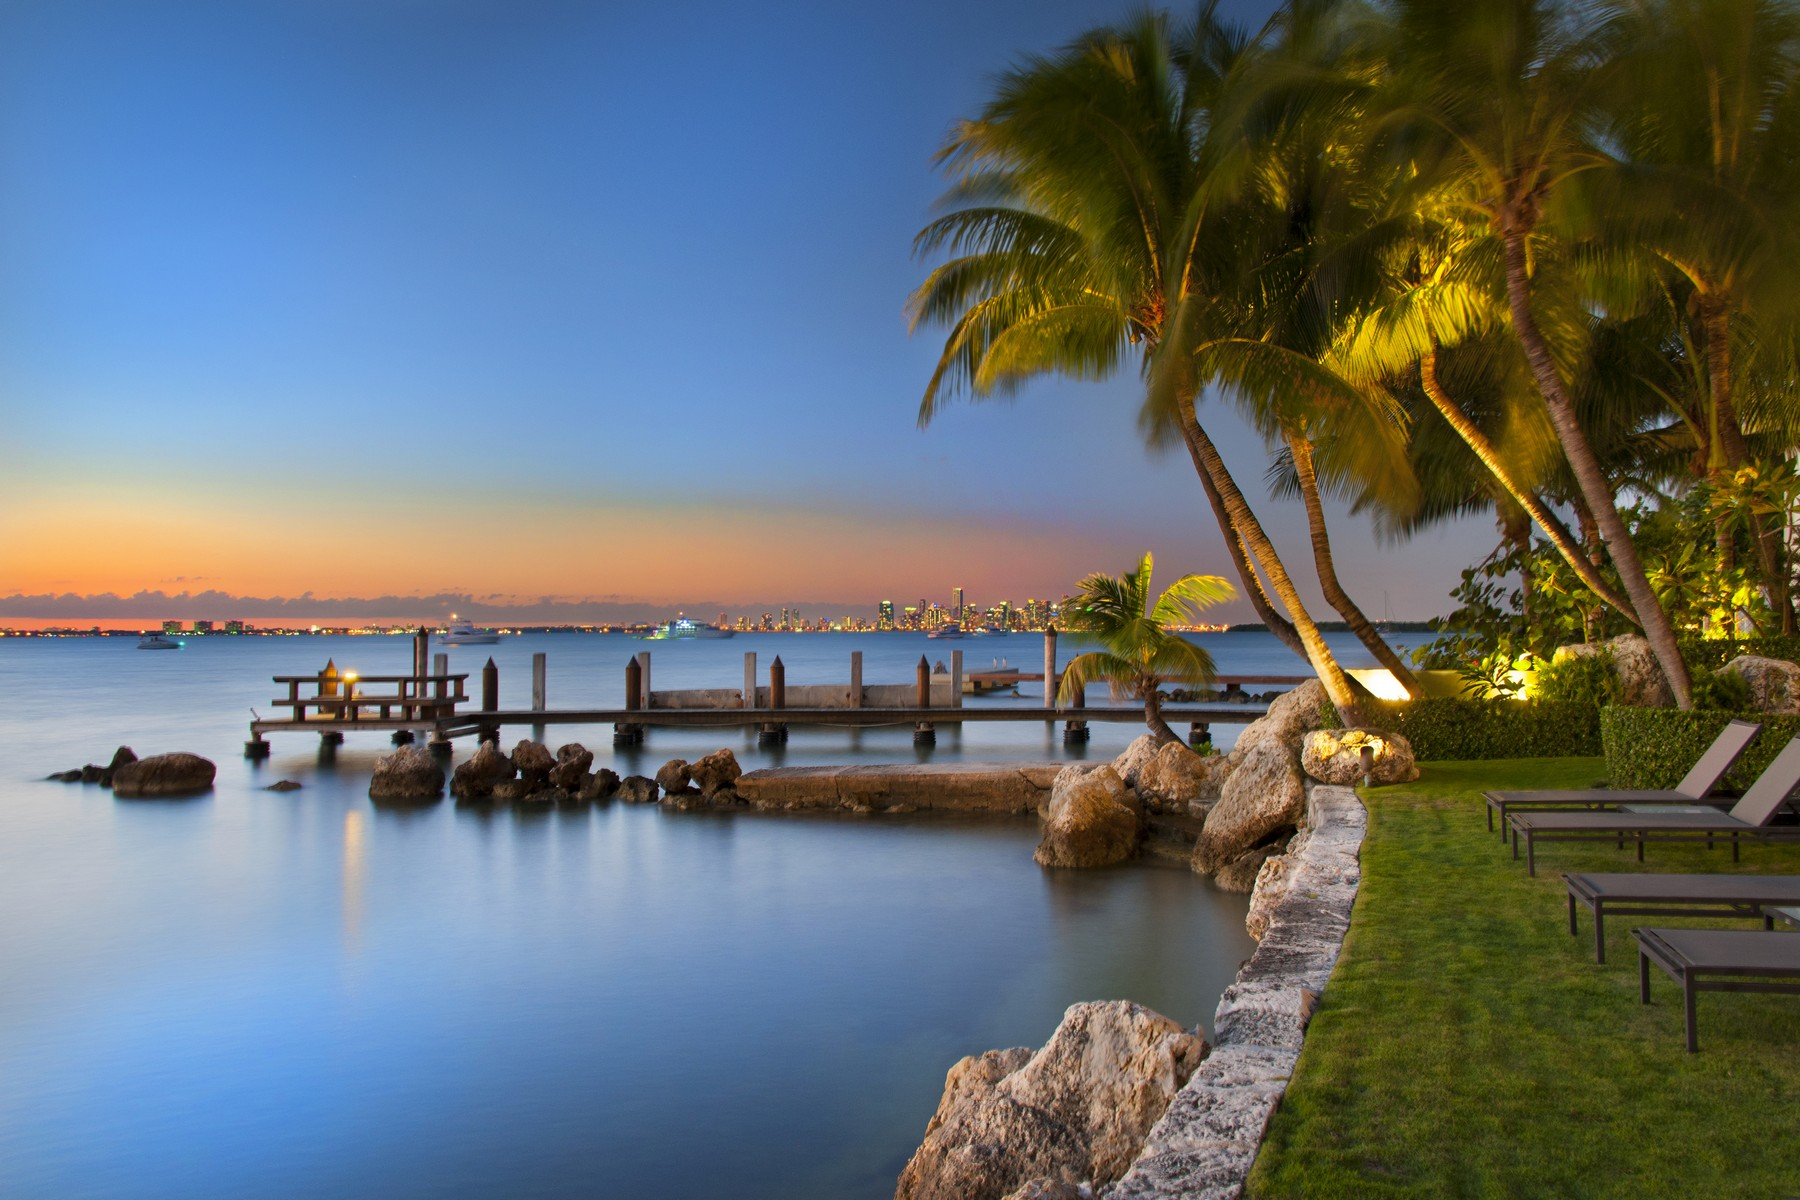 Single Family Home for Sale at 9 Harbor Point Key Biscayne, Florida 33149 United States